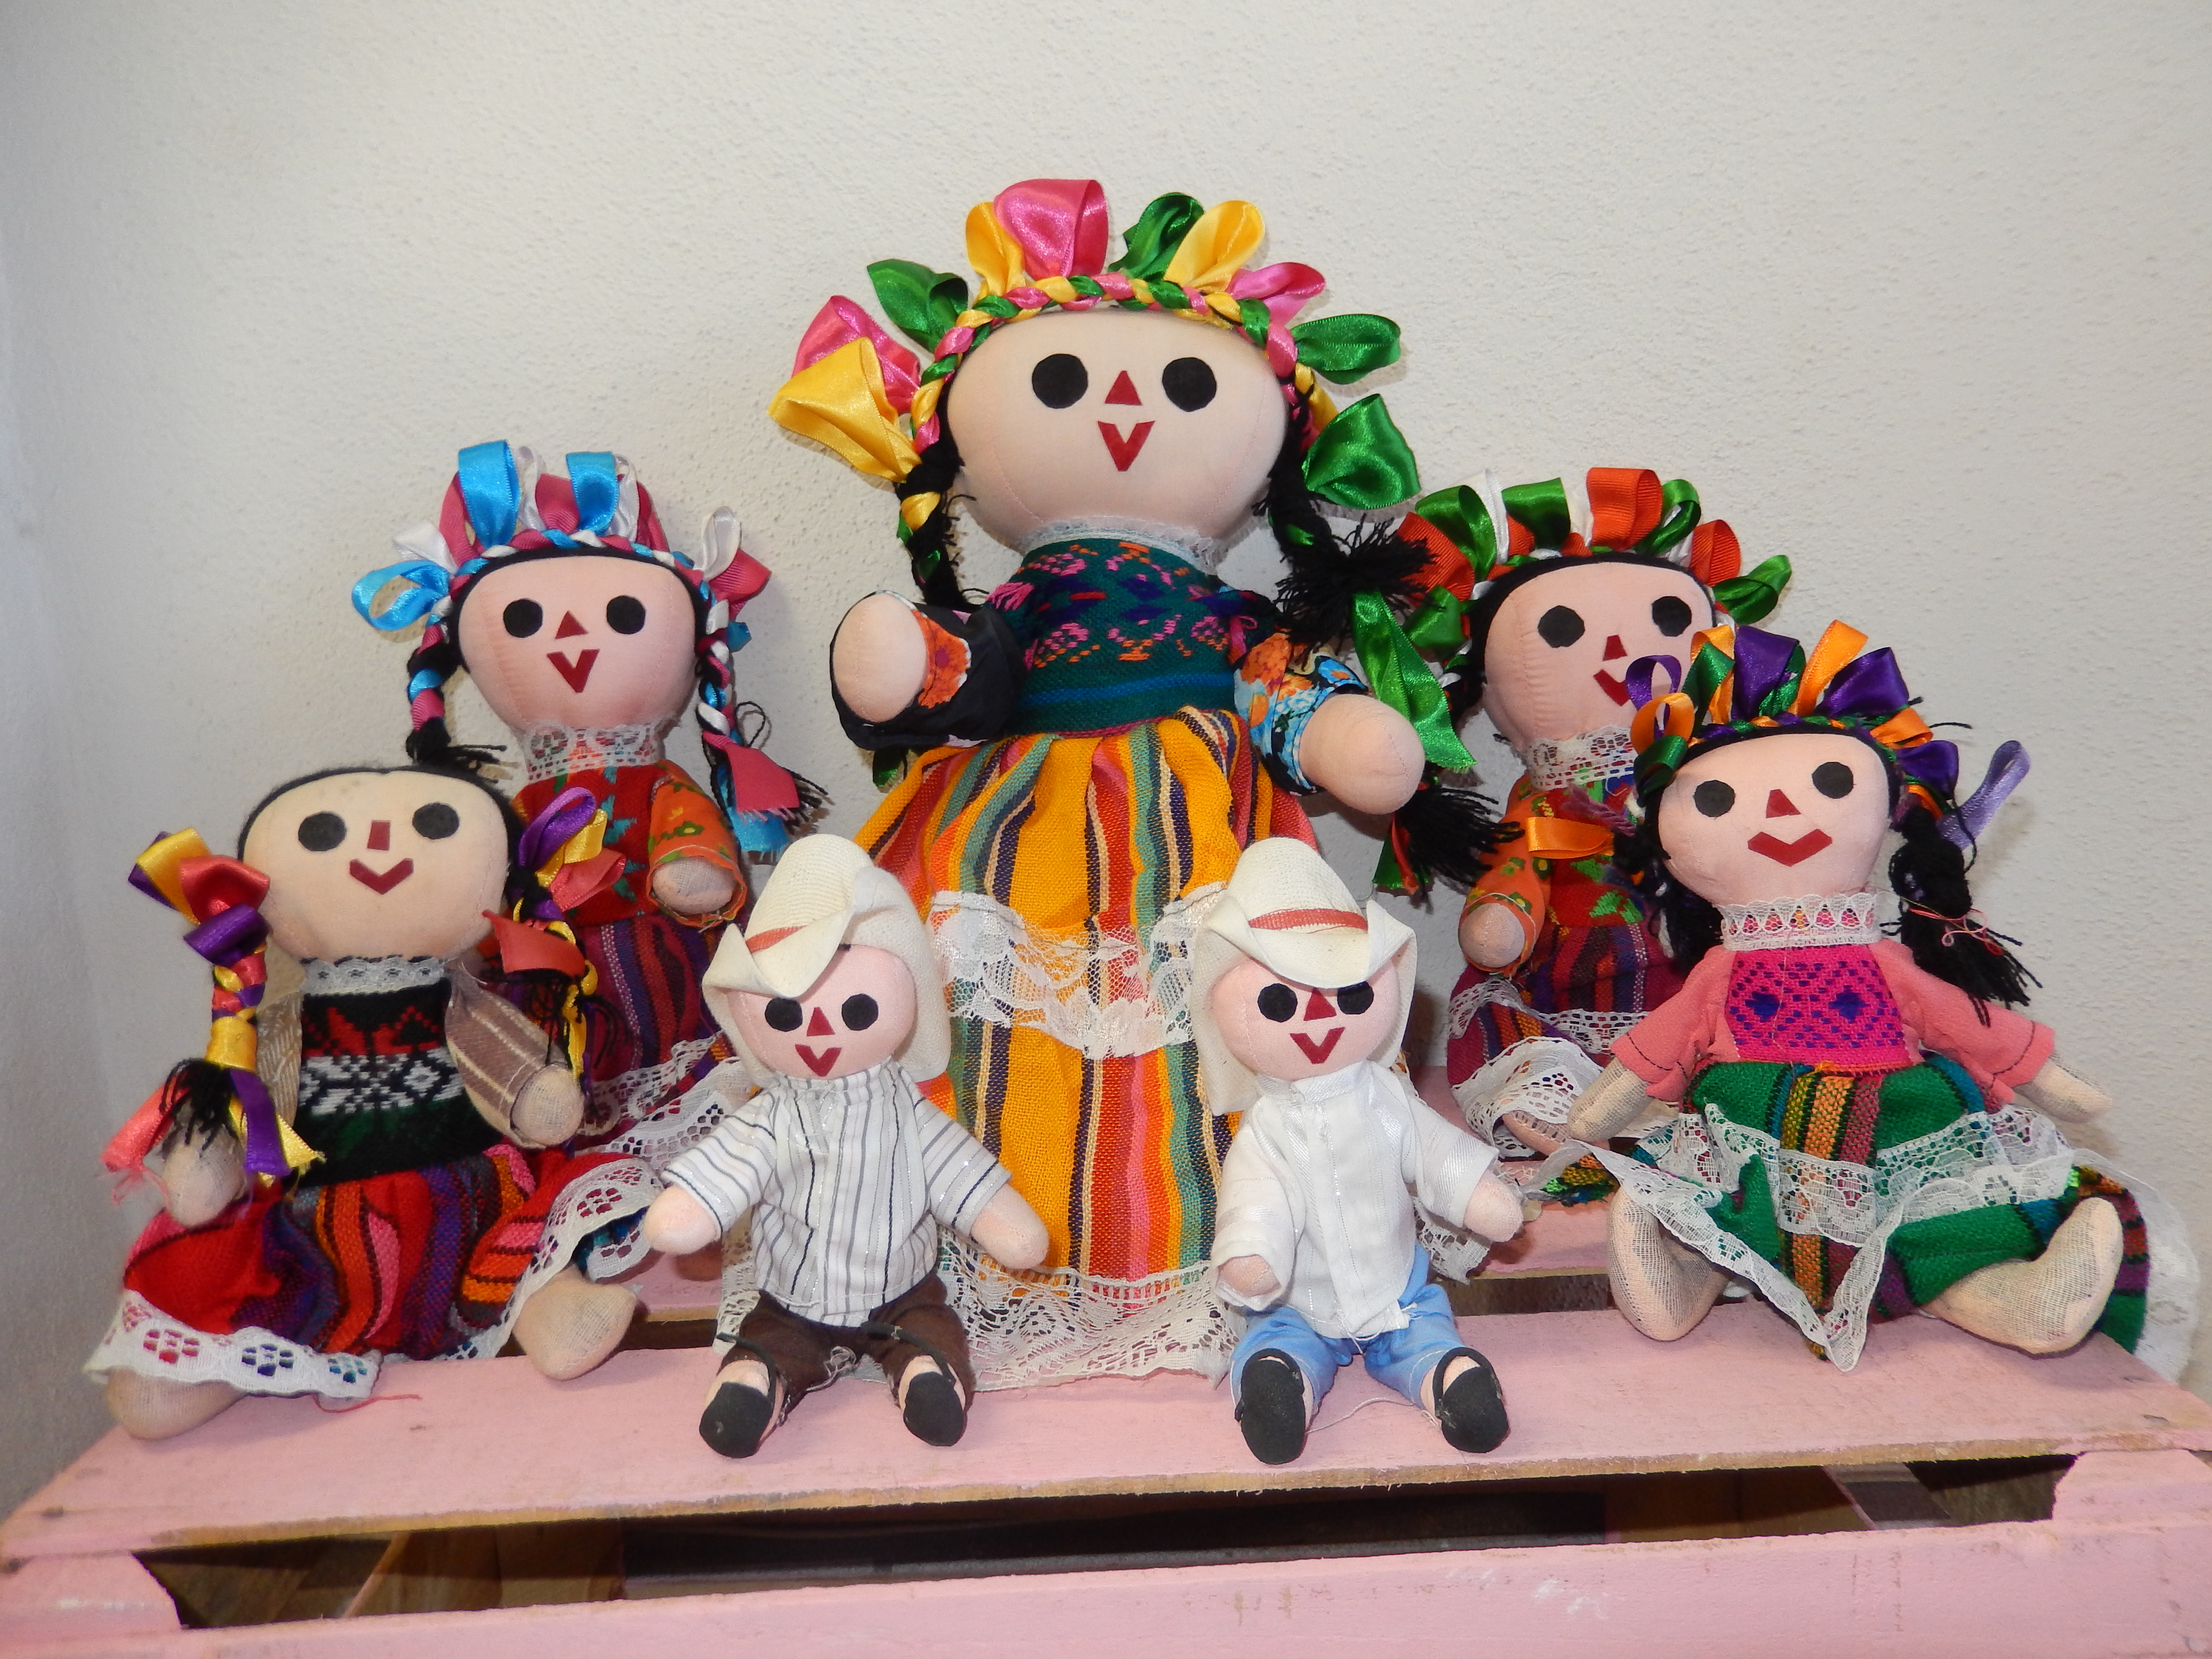 Handmade Dolls - Mexican style